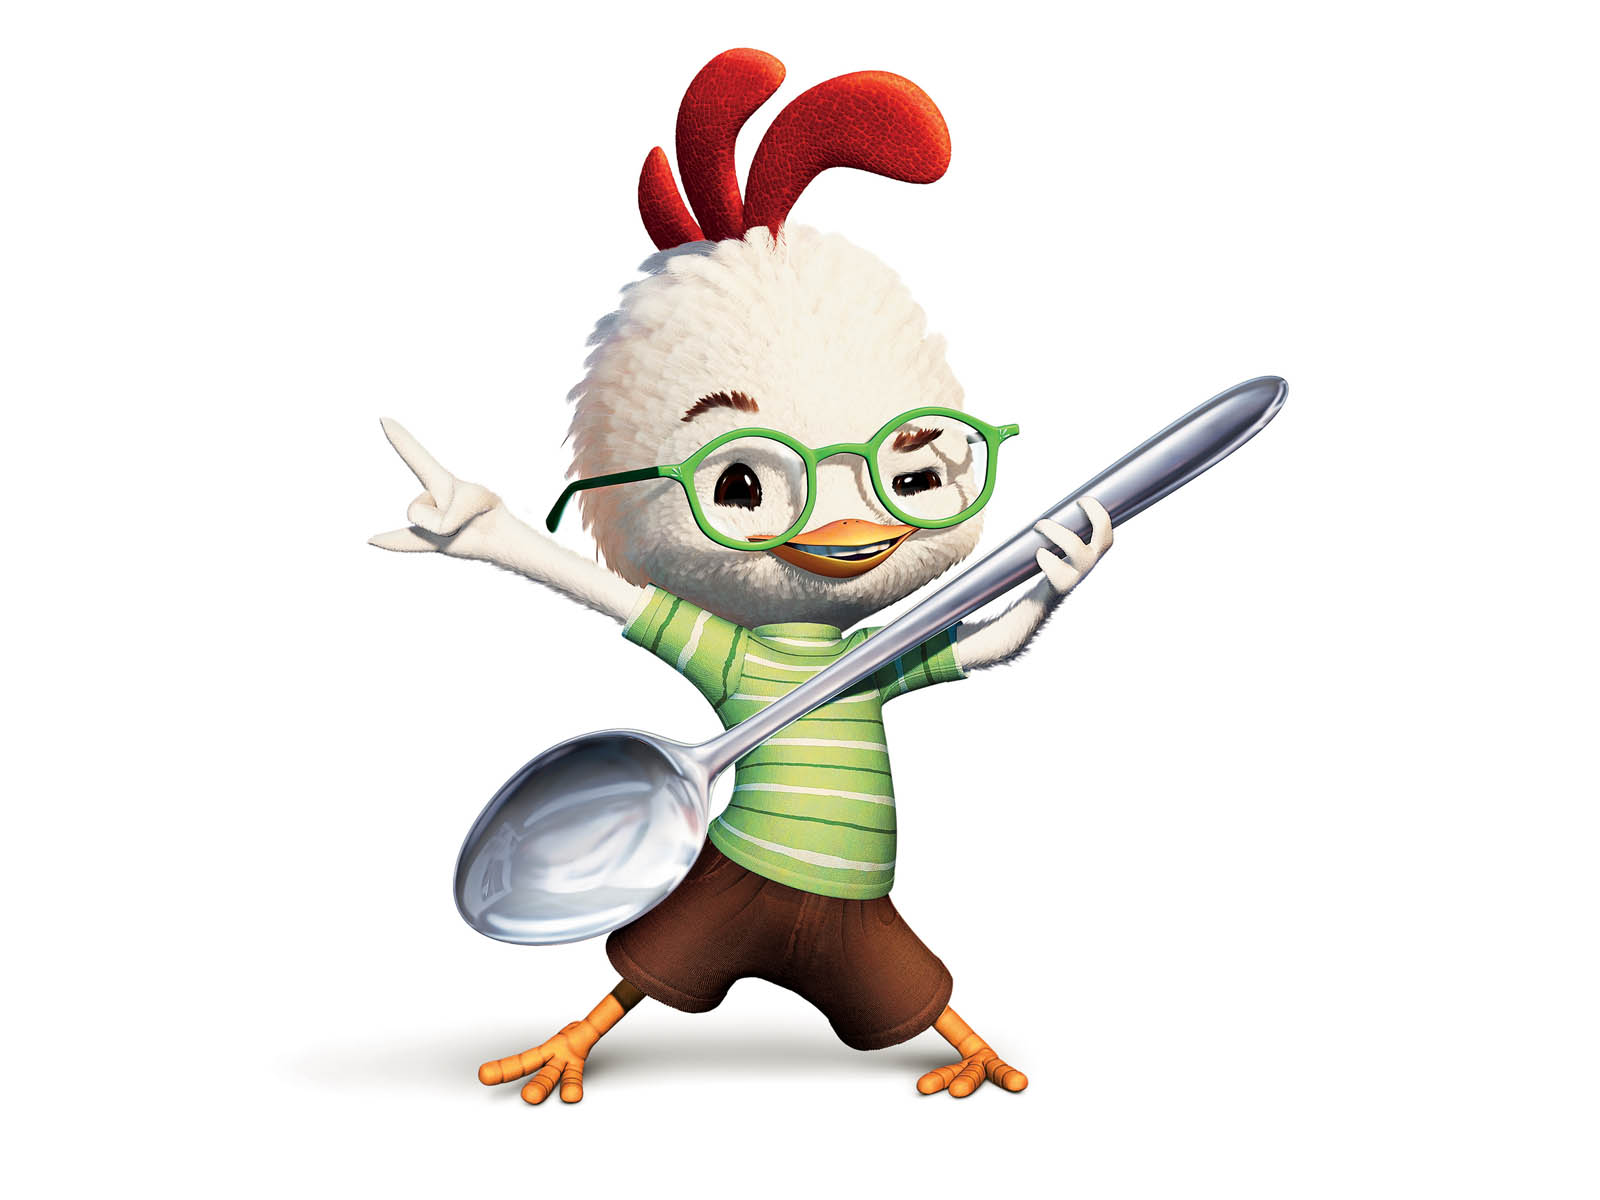 Wallpapers Cars Disney Hd Wallpapers Chicken Little Wallpapers